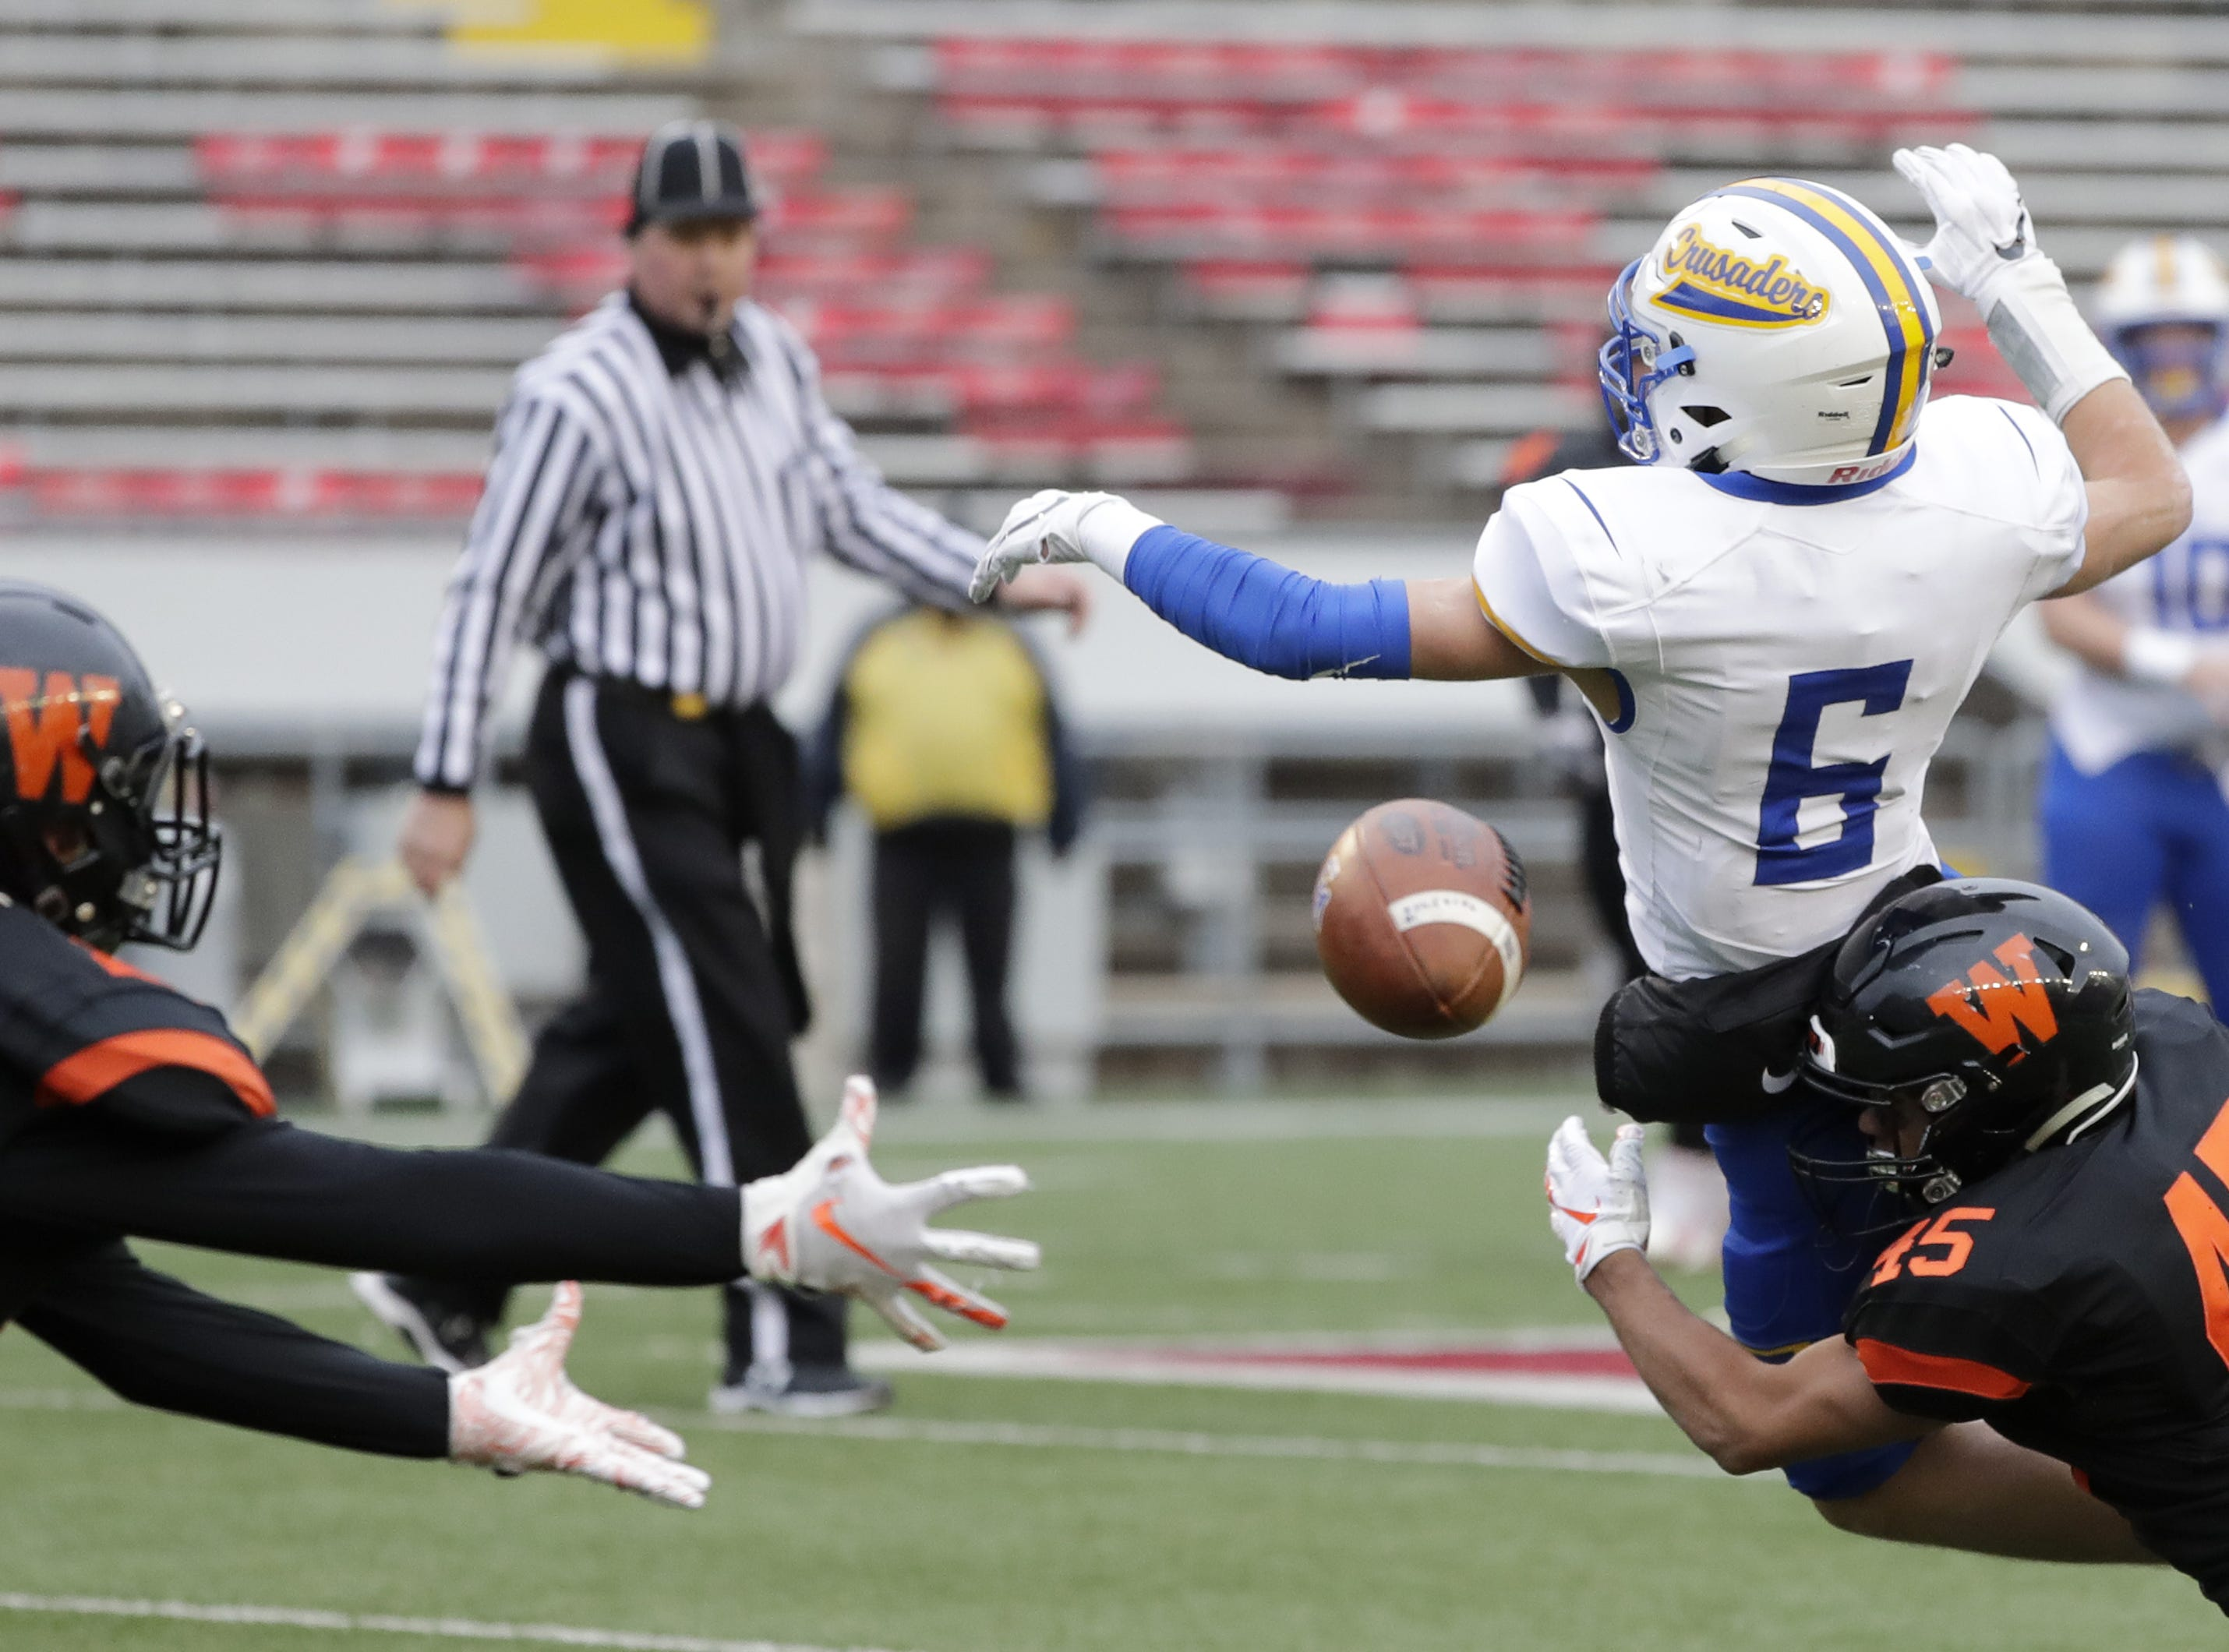 West De Pere's Isiah Burdette (45) defends a pass intended for Catholic Memorial's Joe Sikma (6) in the WIAA Division 3 championship game at Camp Randall Stadium on Friday, November 16, 2018 in Madison, Wis.